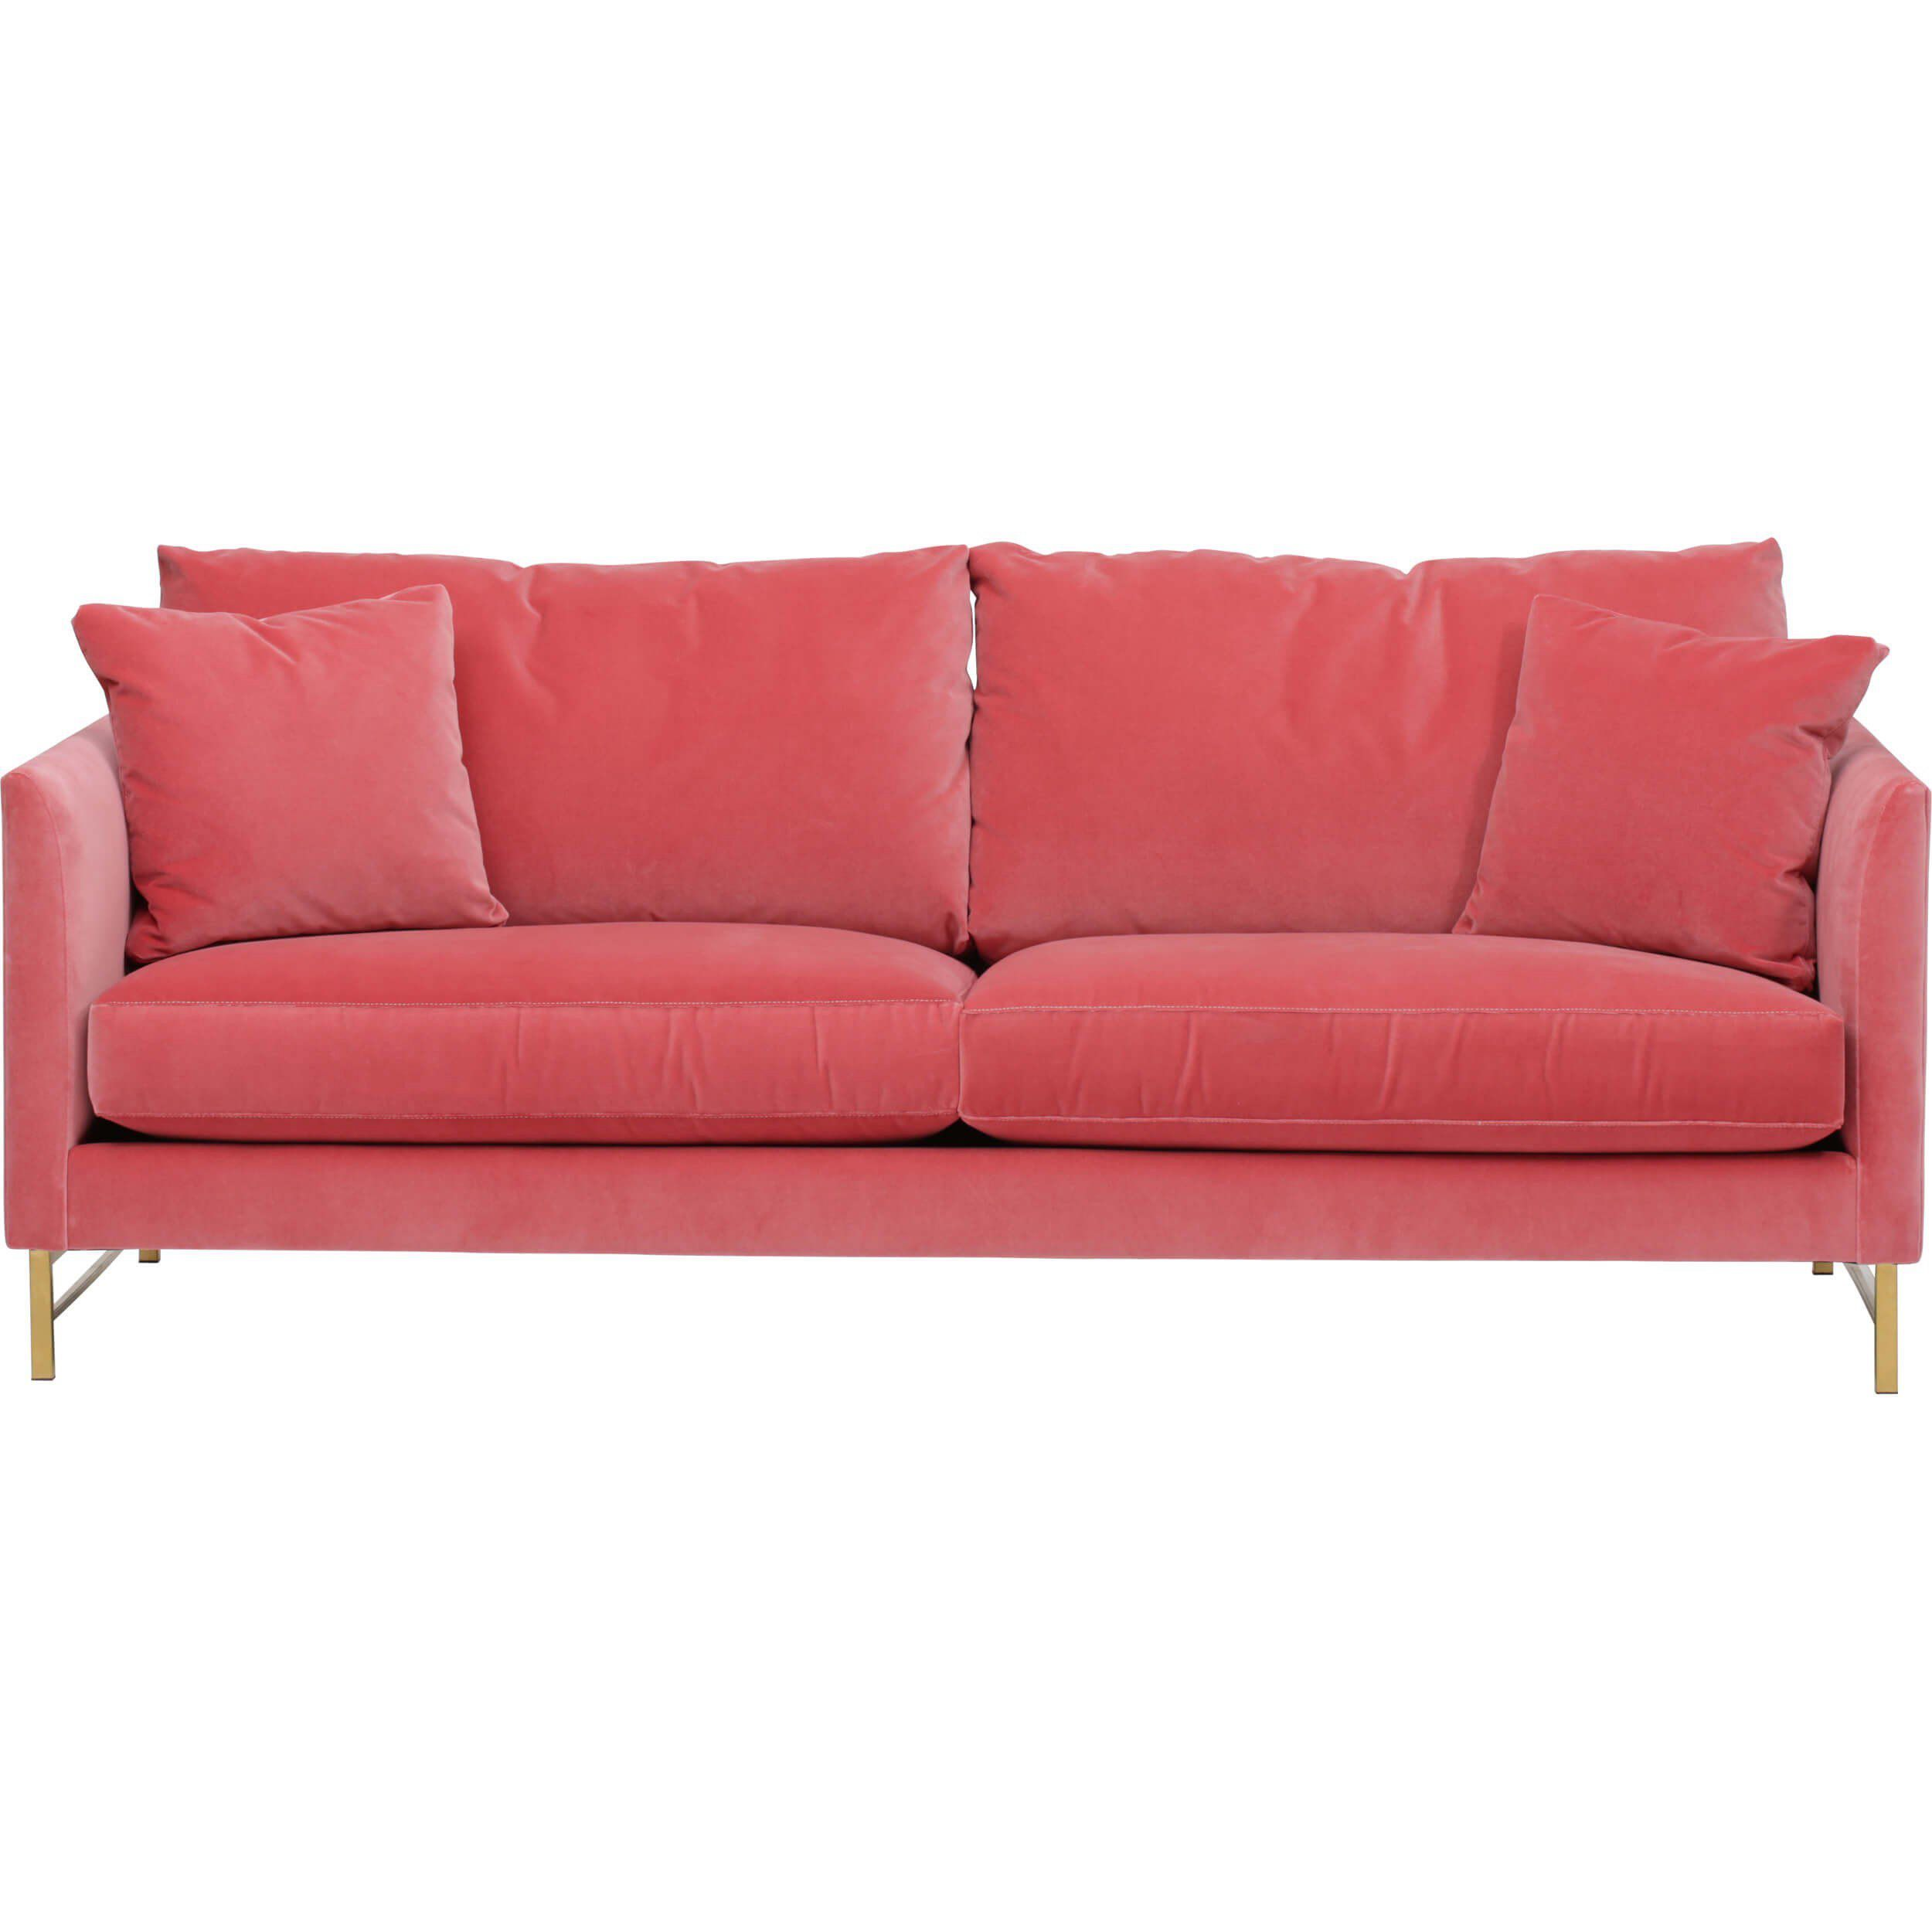 Red Sofa 20 best red couch ideas - red sofas JIPGRFM